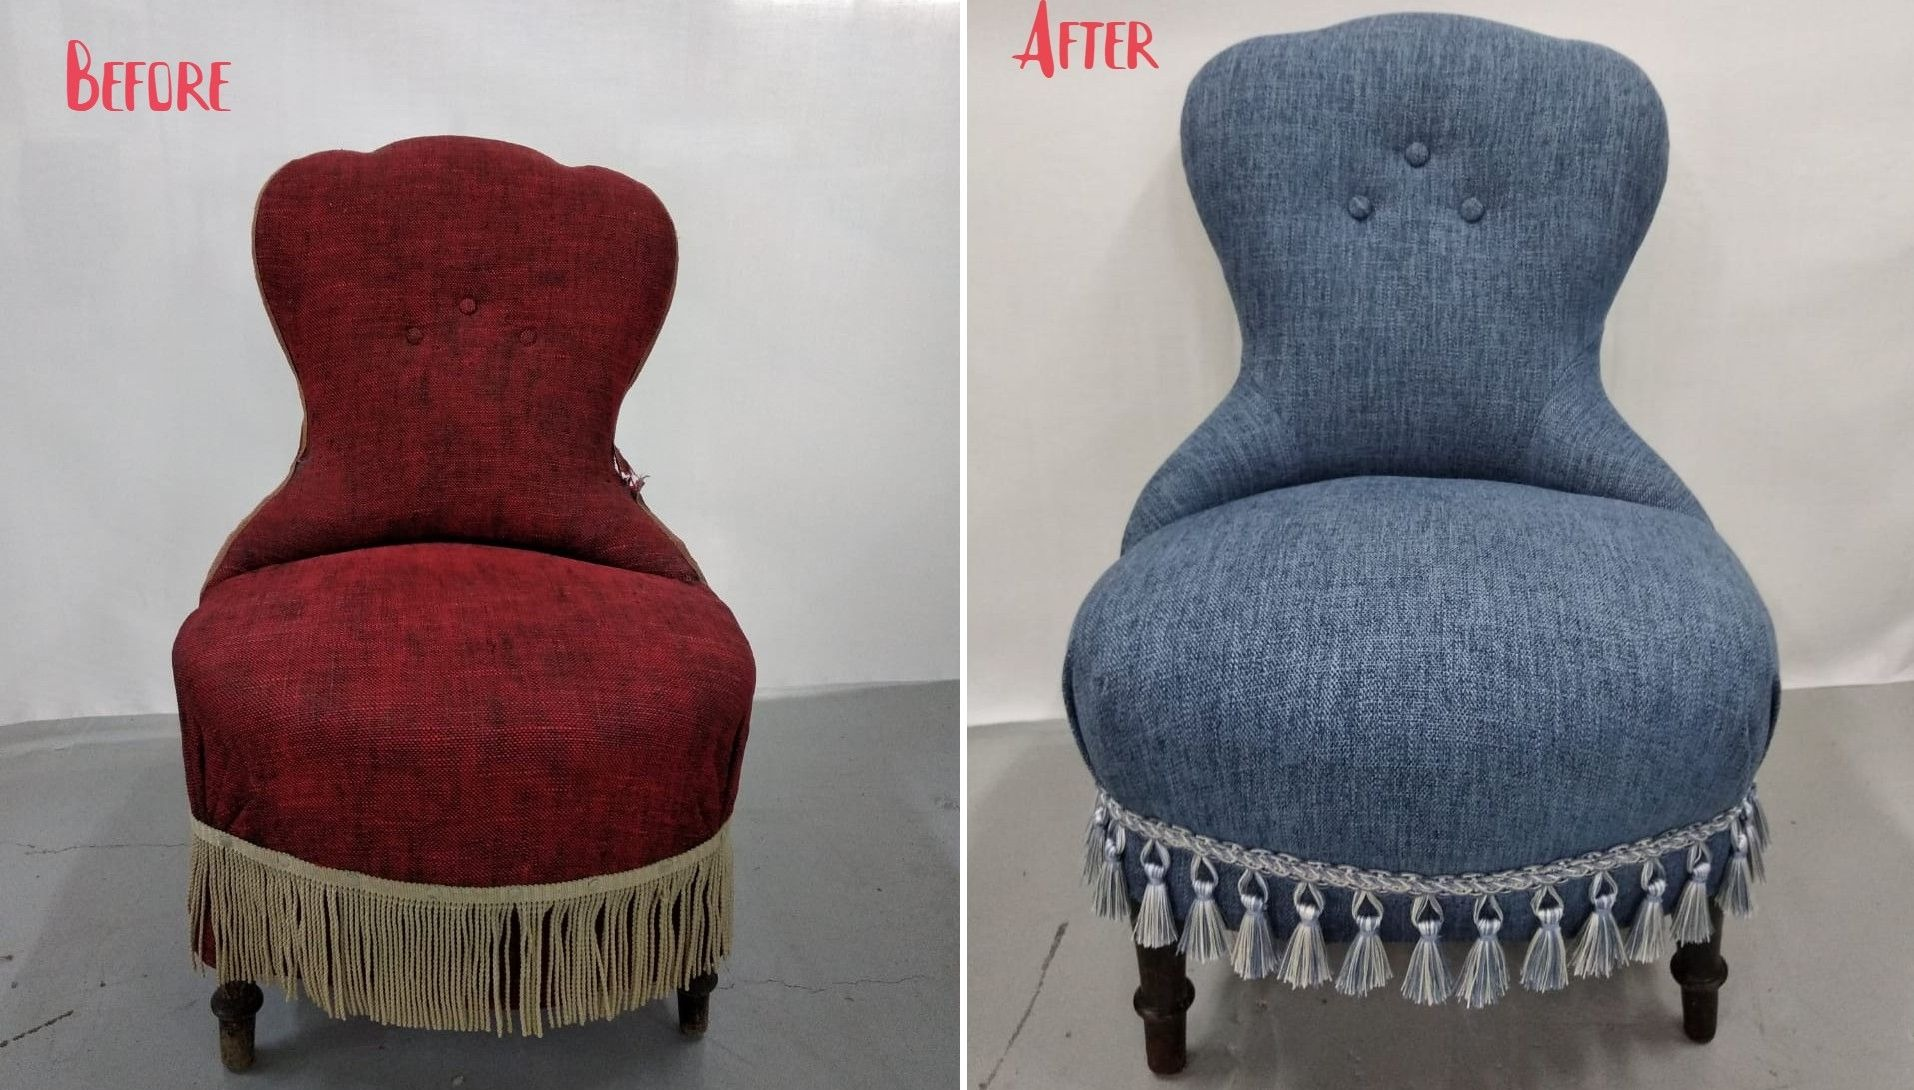 Upholstered chairs before & after